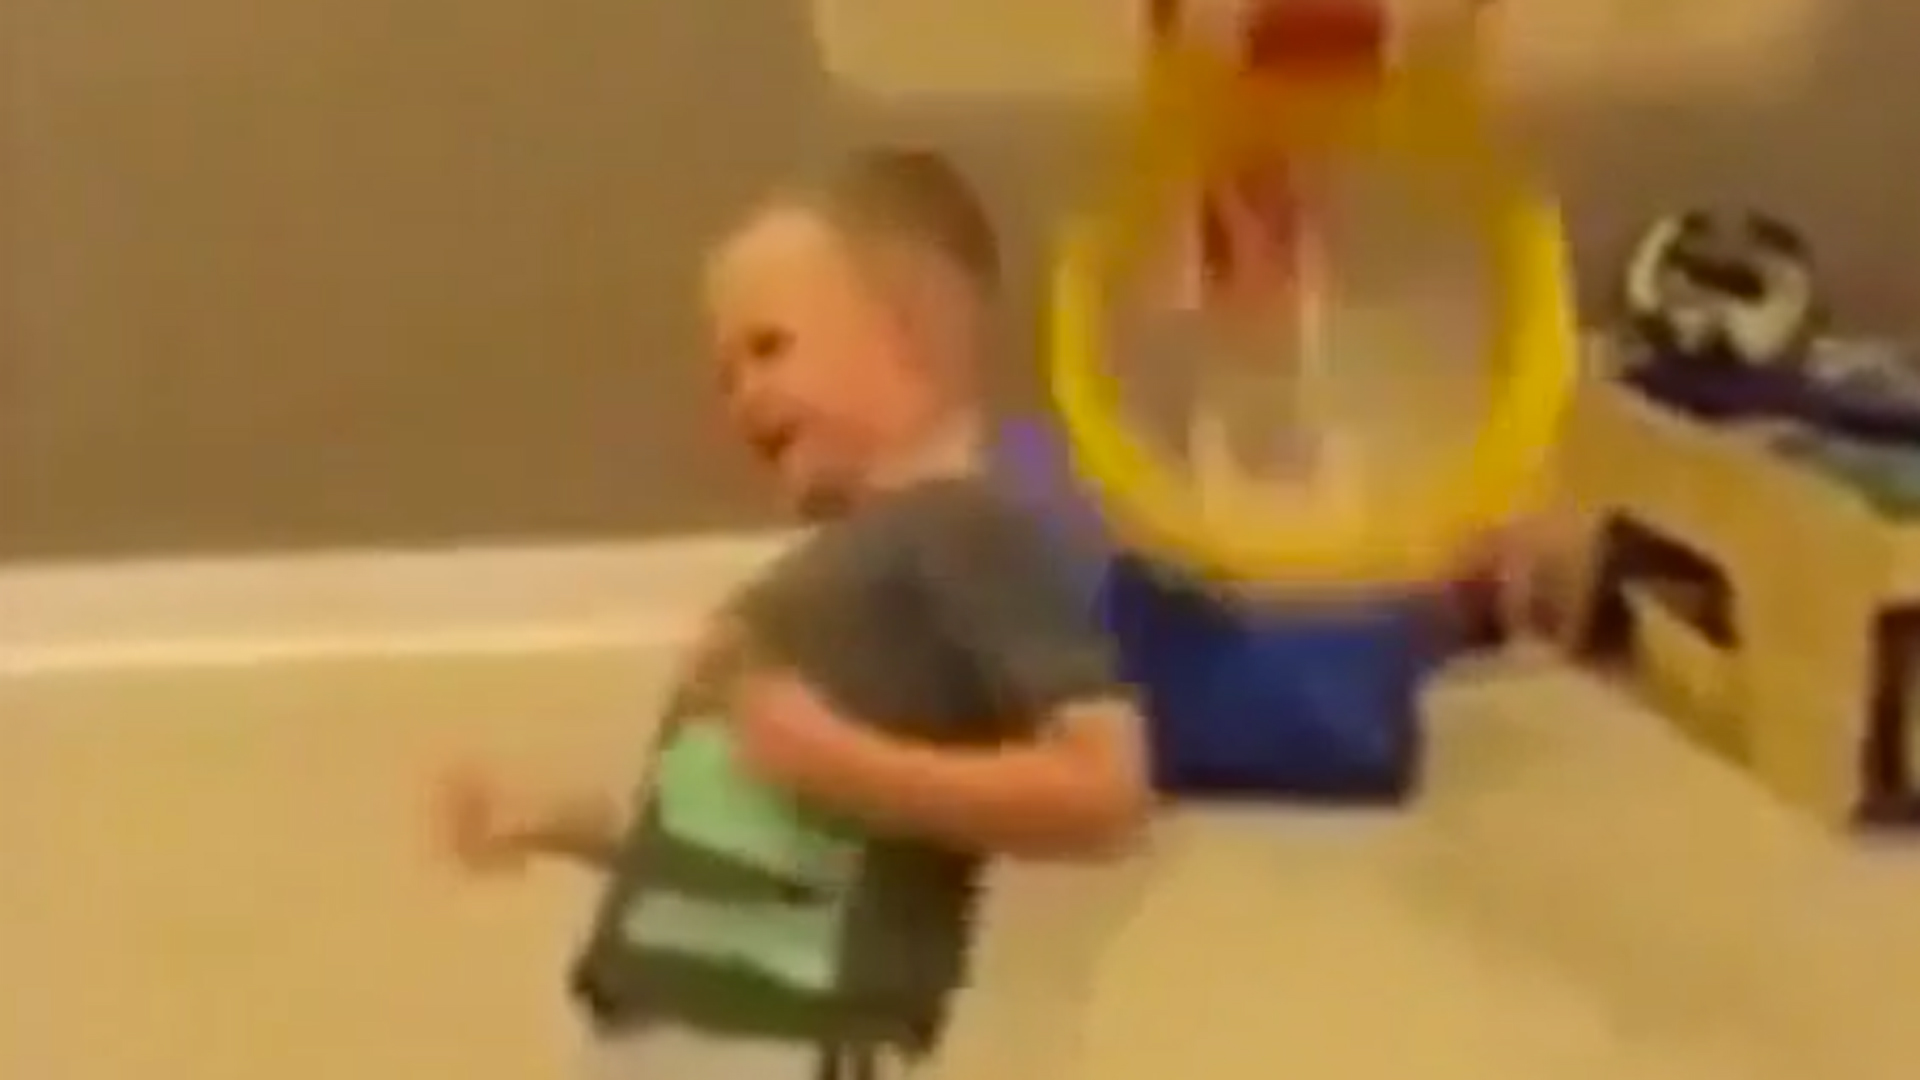 Small child learns valuble life lesson about post-dunk celebration